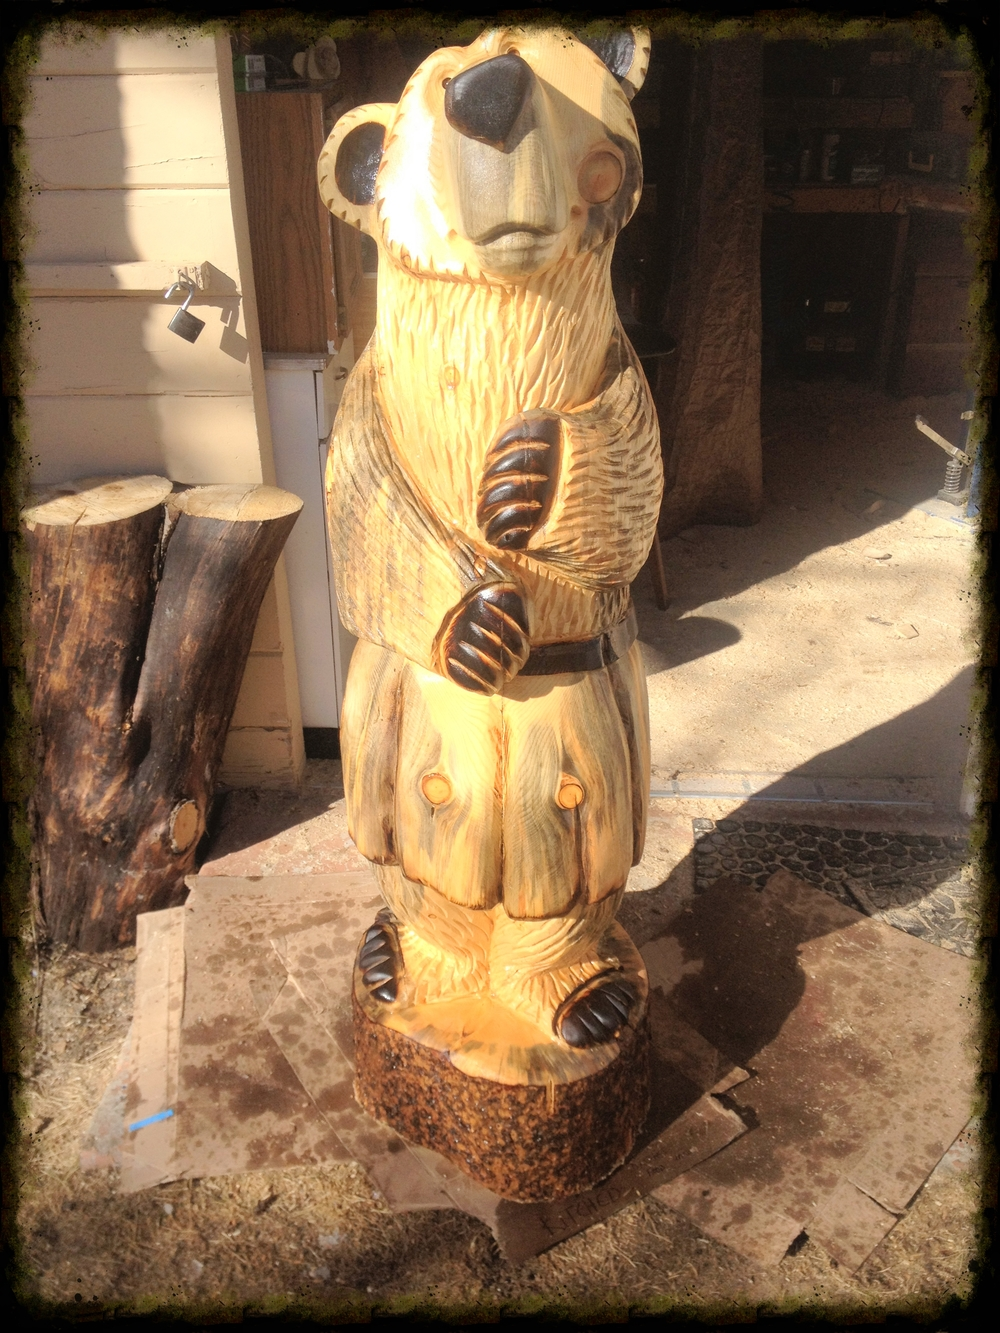 Bear wearing a kilt - 5 ft - SOLD for $750